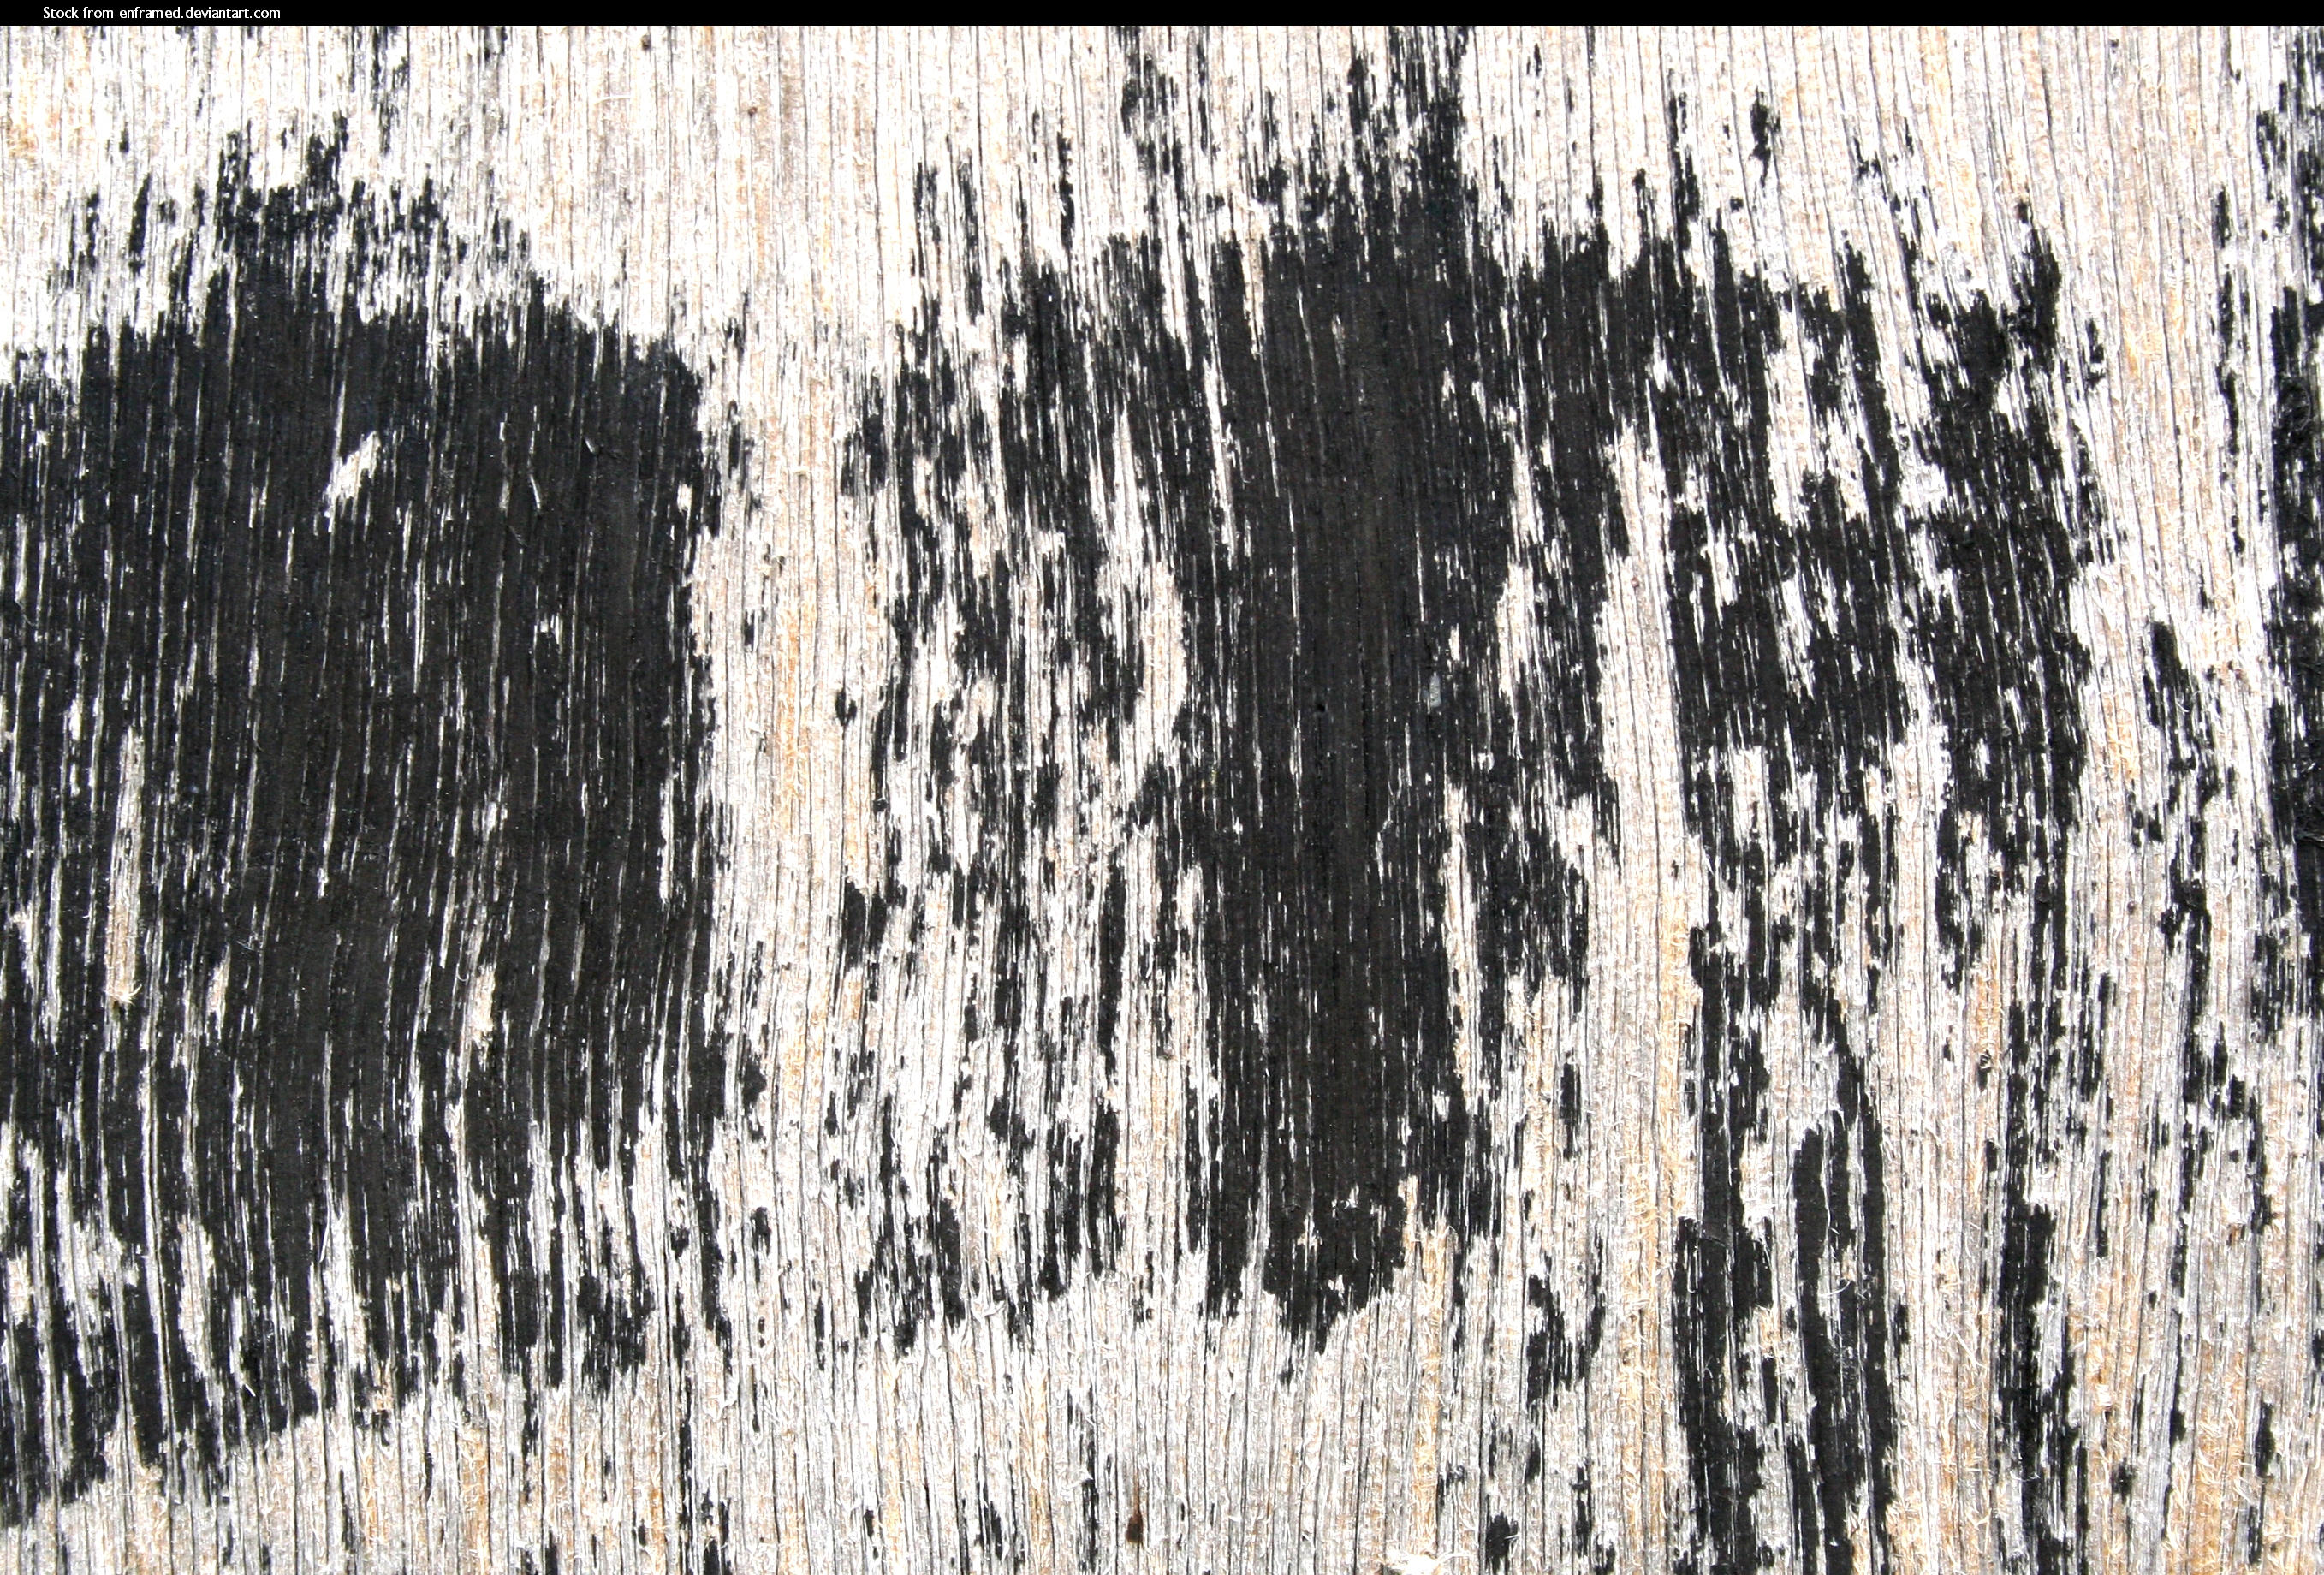 Plywood texture 1 by enframed